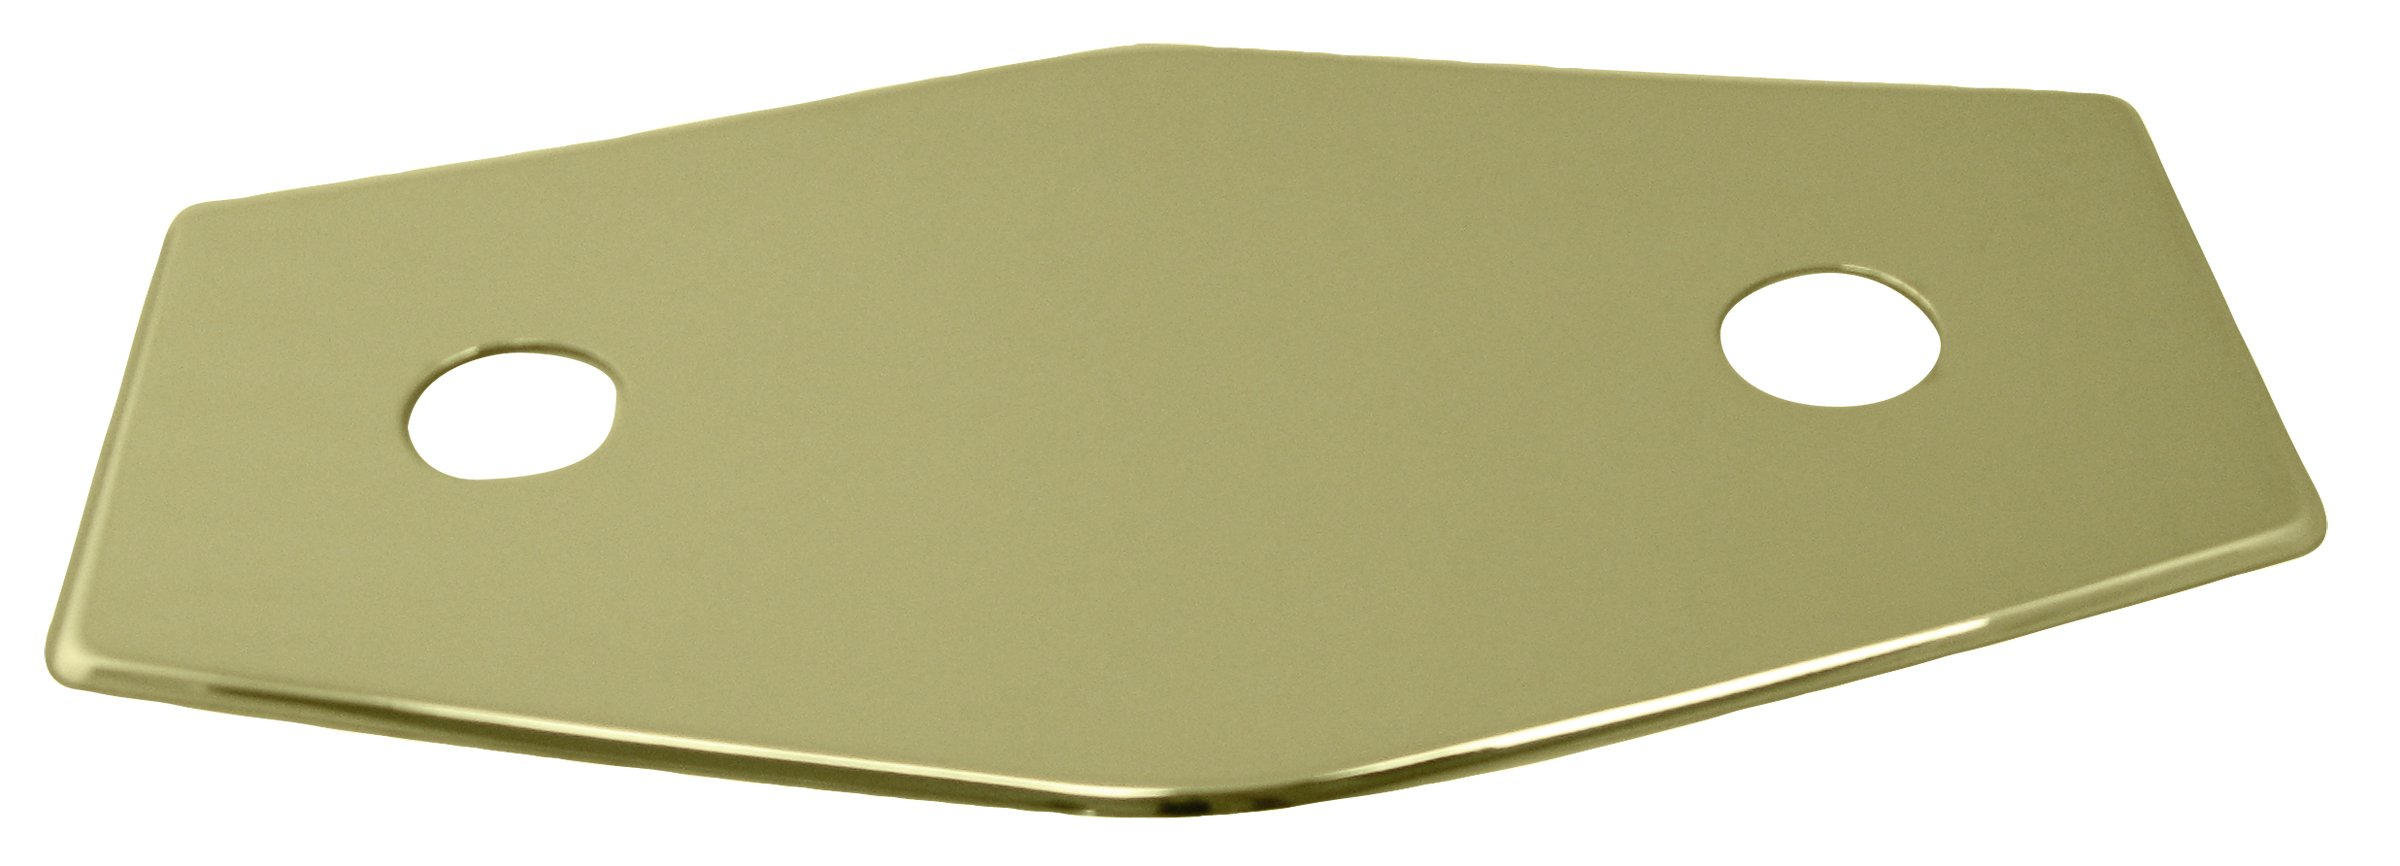 Westbrass Two-Hole Remodel Plate, Polished Brass, D504-03